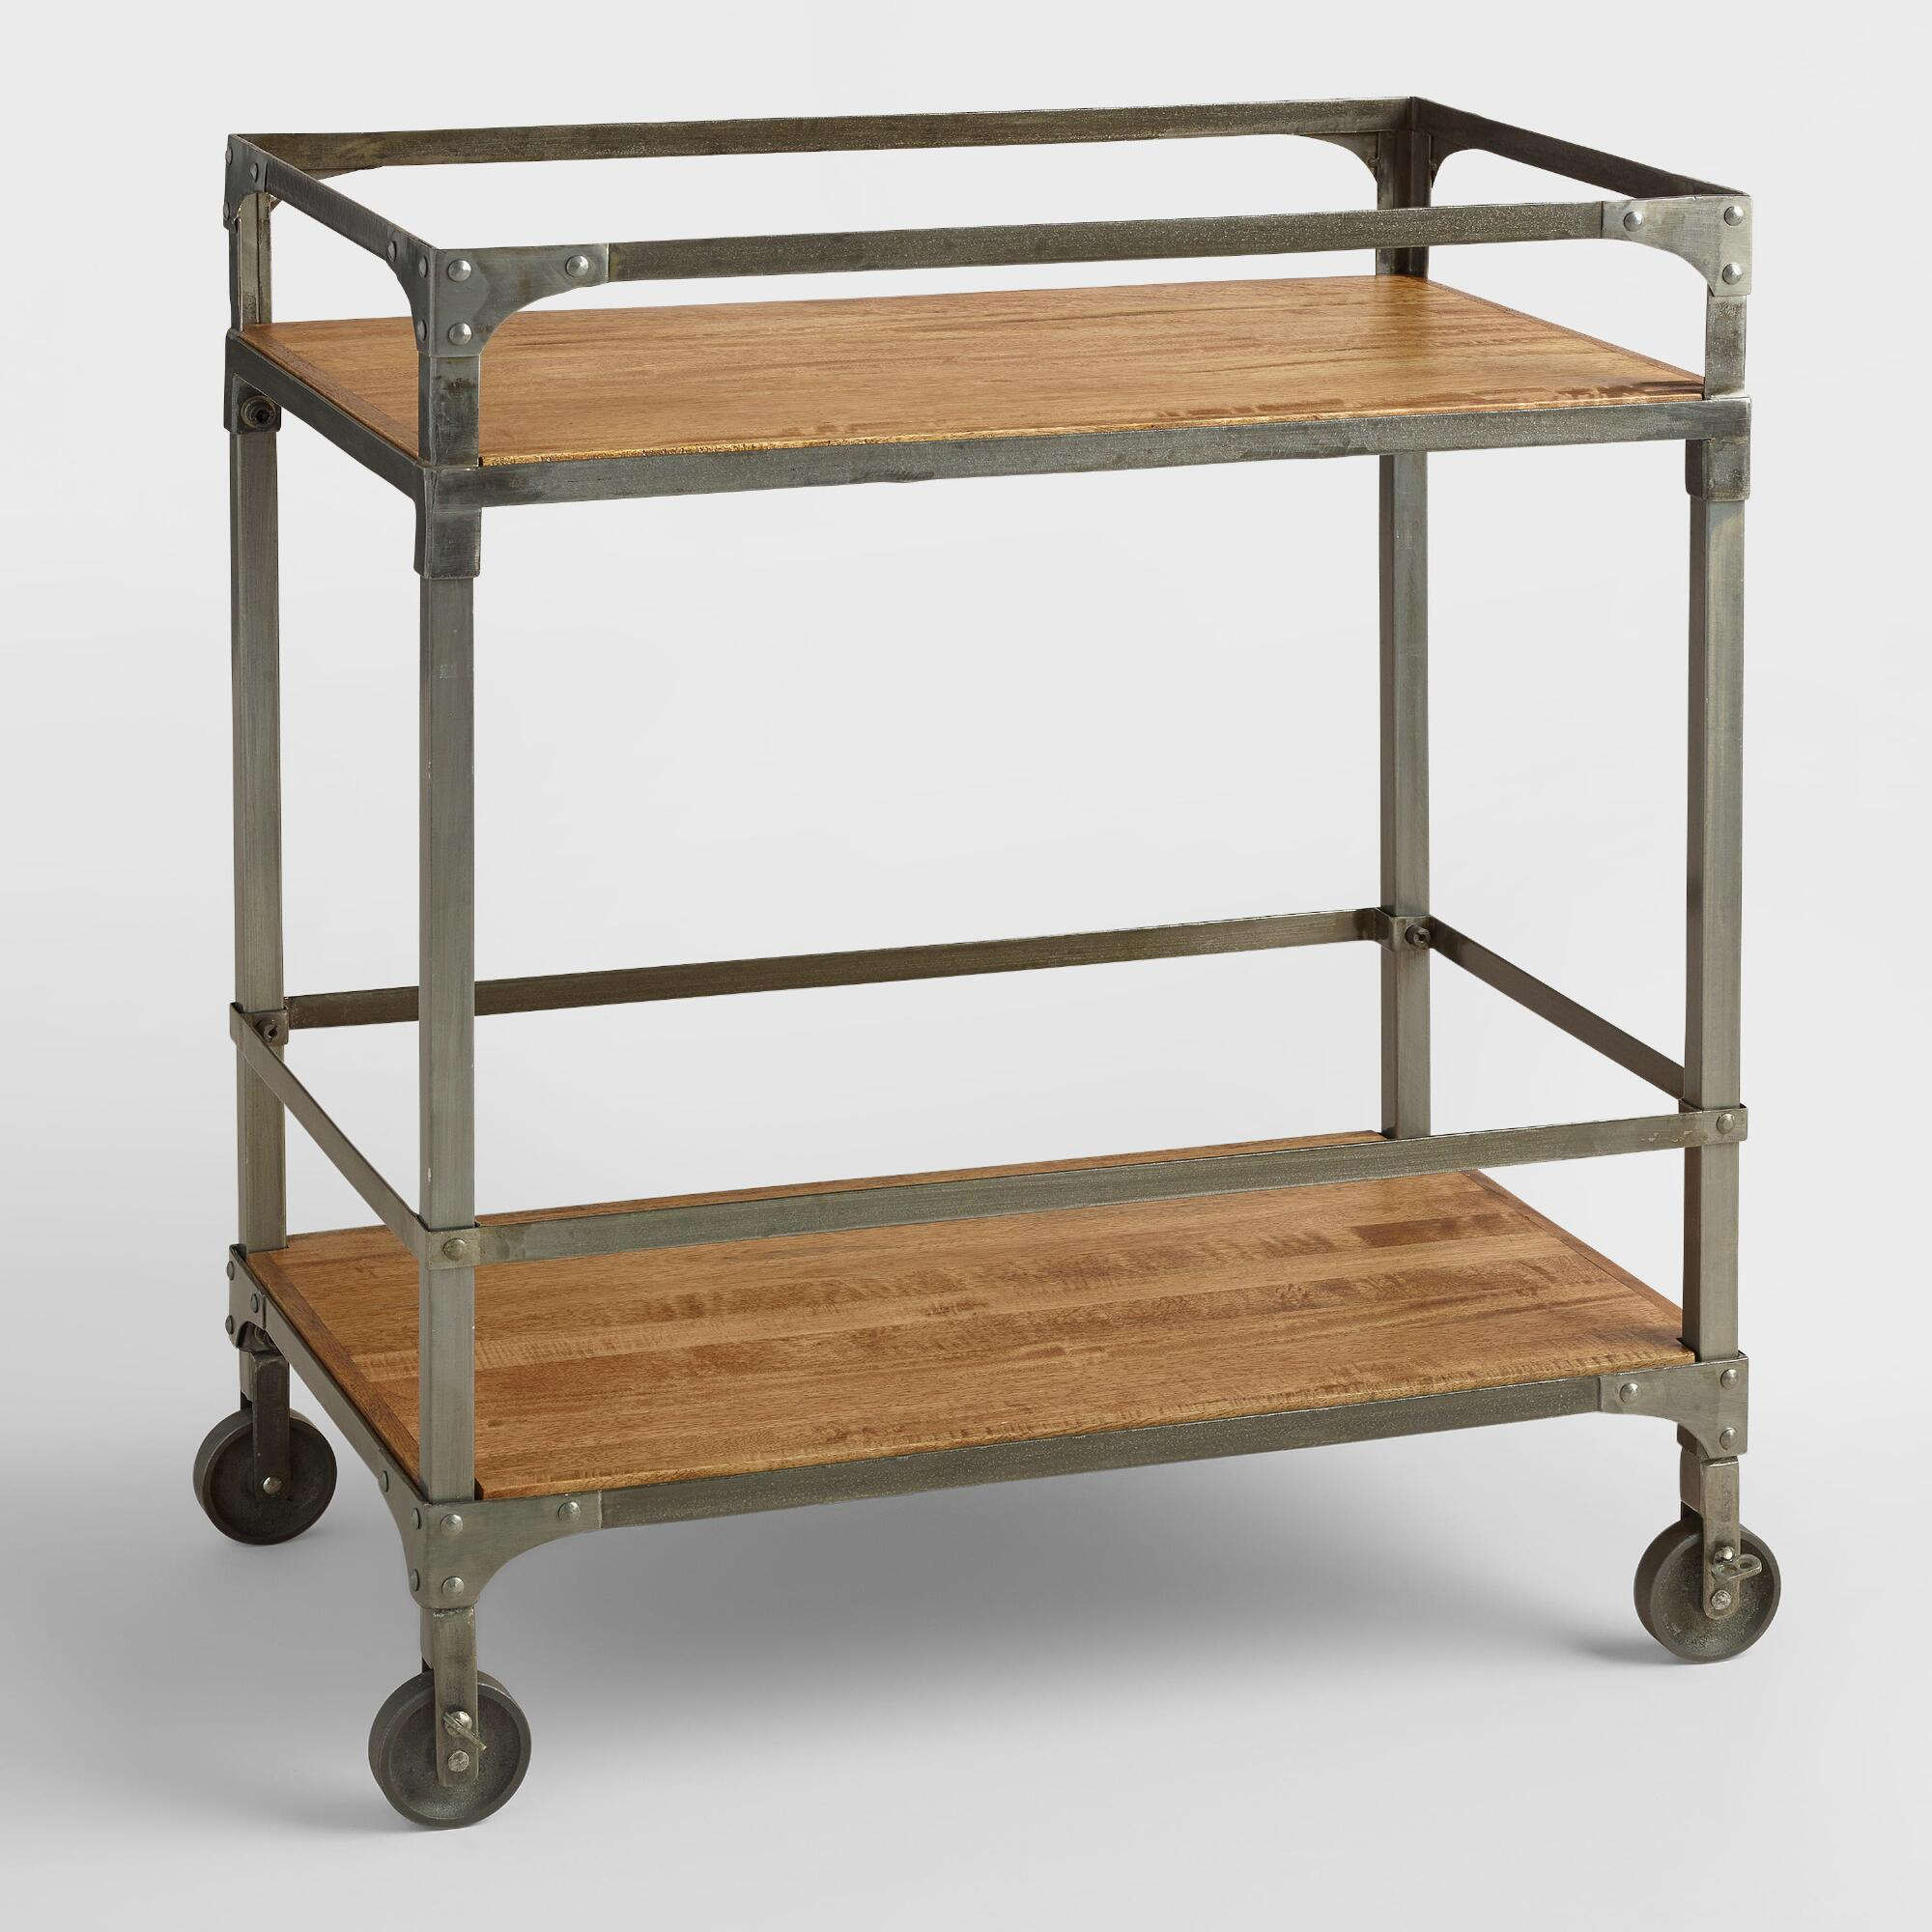 Outdoor Lighting Stores picture on Outdoor Lighting Storesaiden bar cart.do with Outdoor Lighting Stores, Outdoor Lighting ideas ba48e3bddfd8b7160acdedcad3055780